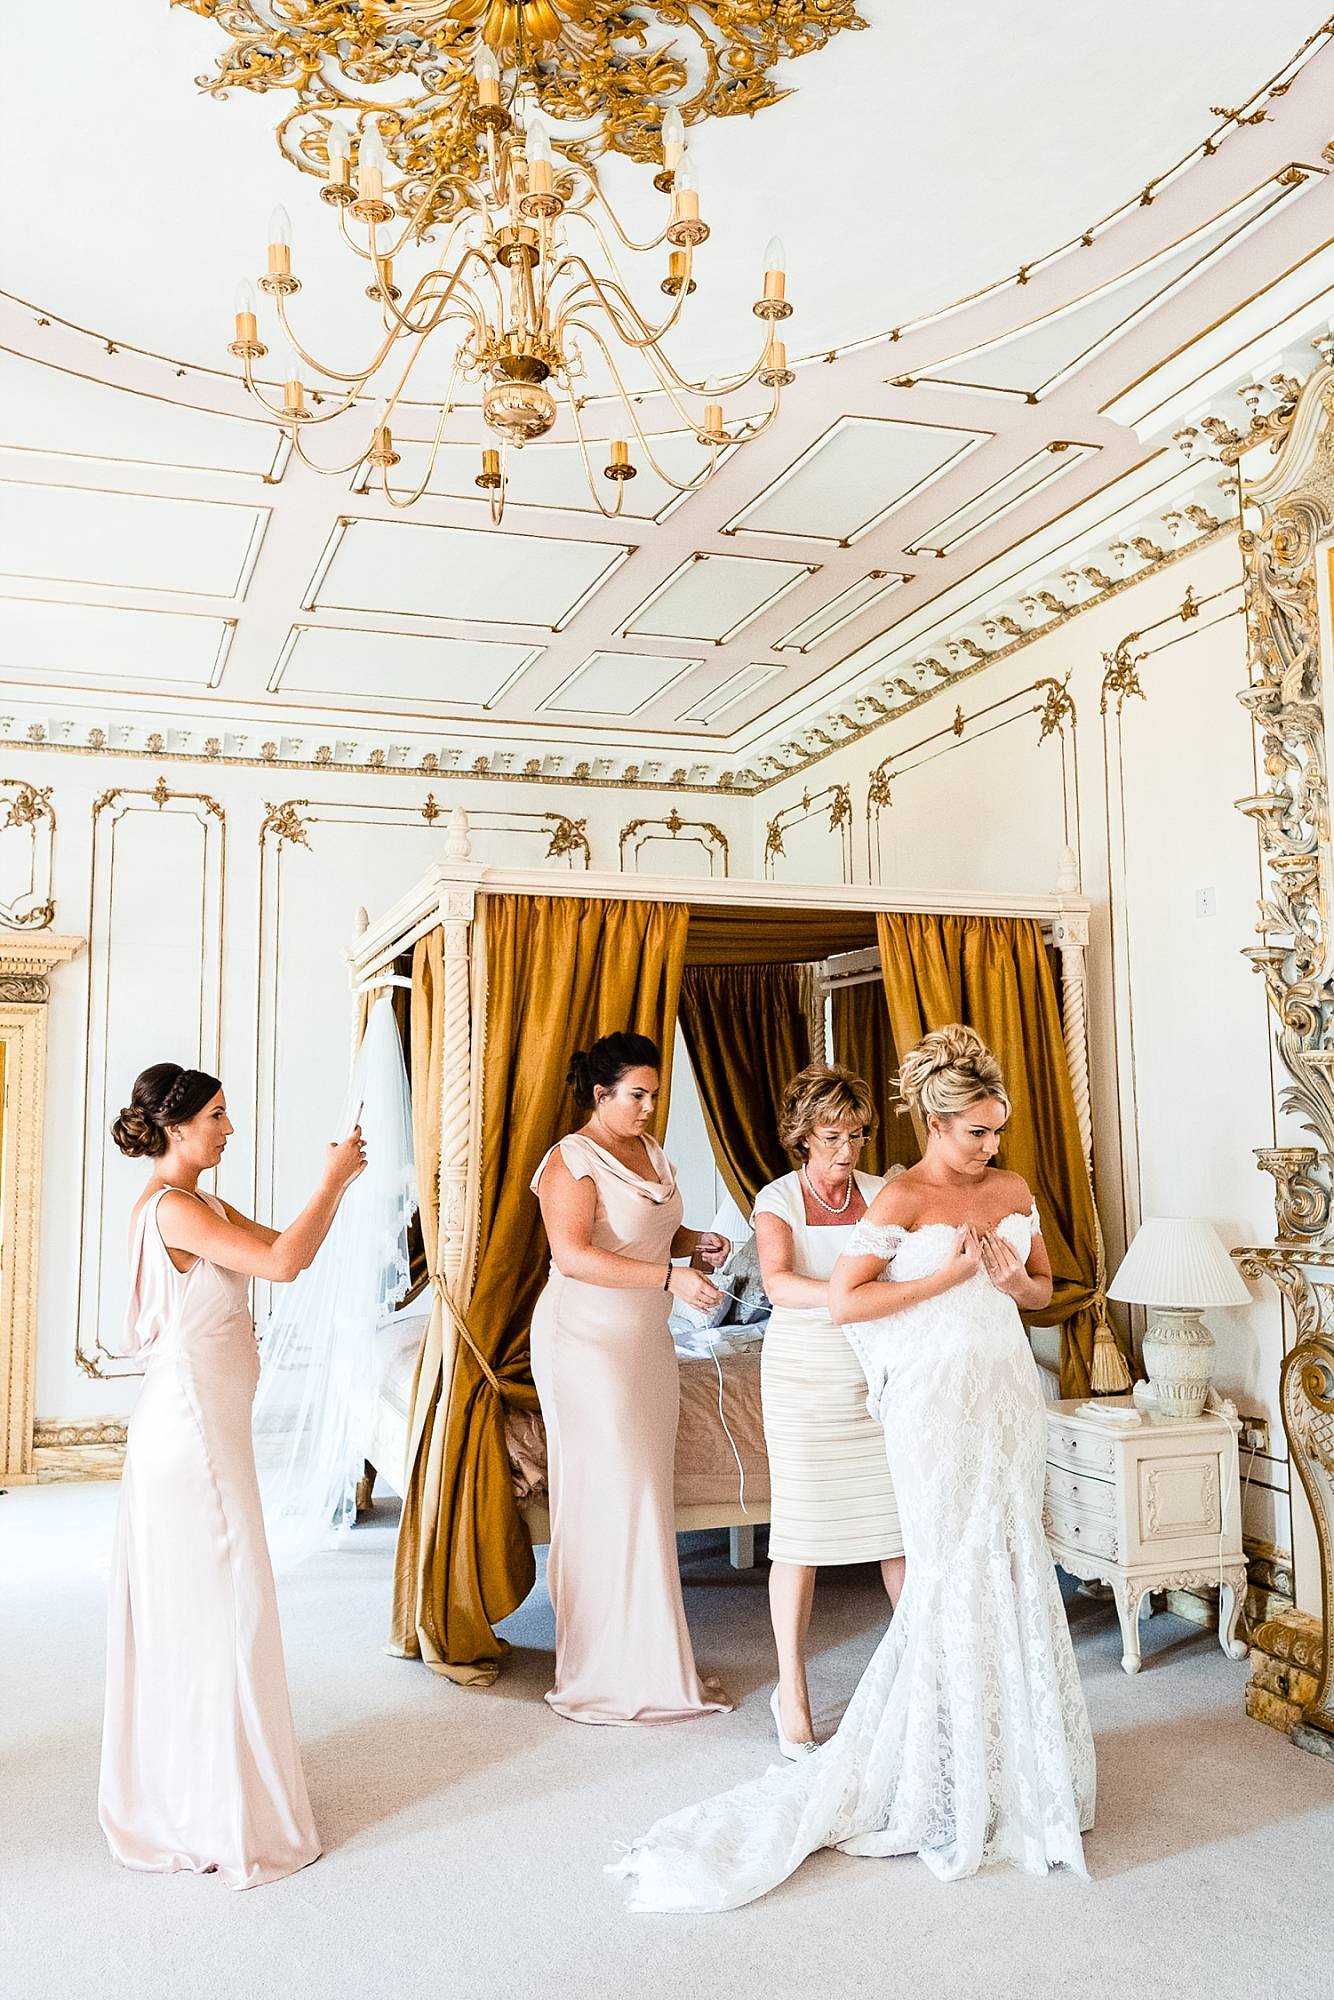 Gosfield Hall Essex Wedding Photographer_0034.jpg